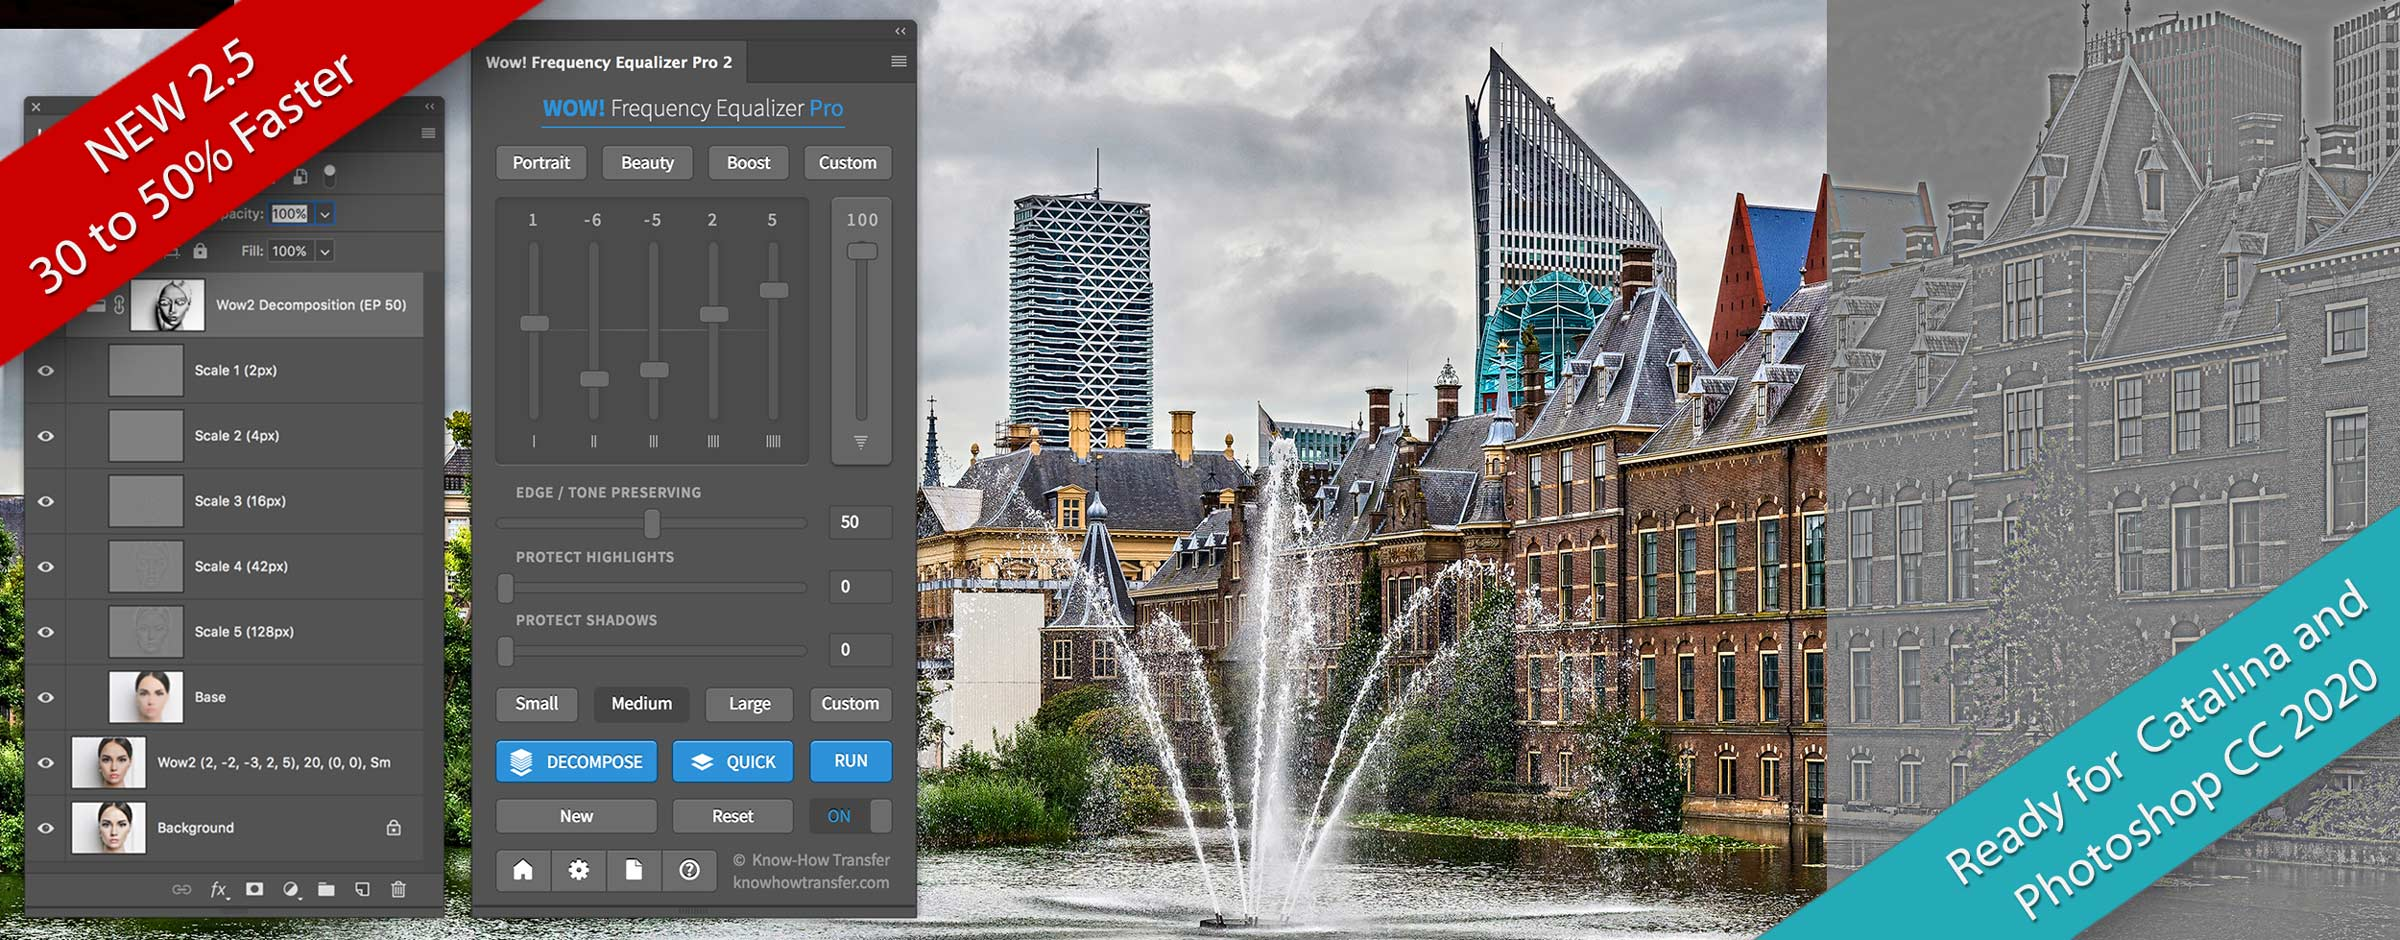 Wow! Frequency Equalizer Pro 2 with Panel, decomposed pyramid used on an image of the Dutch Parliament tuned in Wow!. On the right a sample of a scale layer.